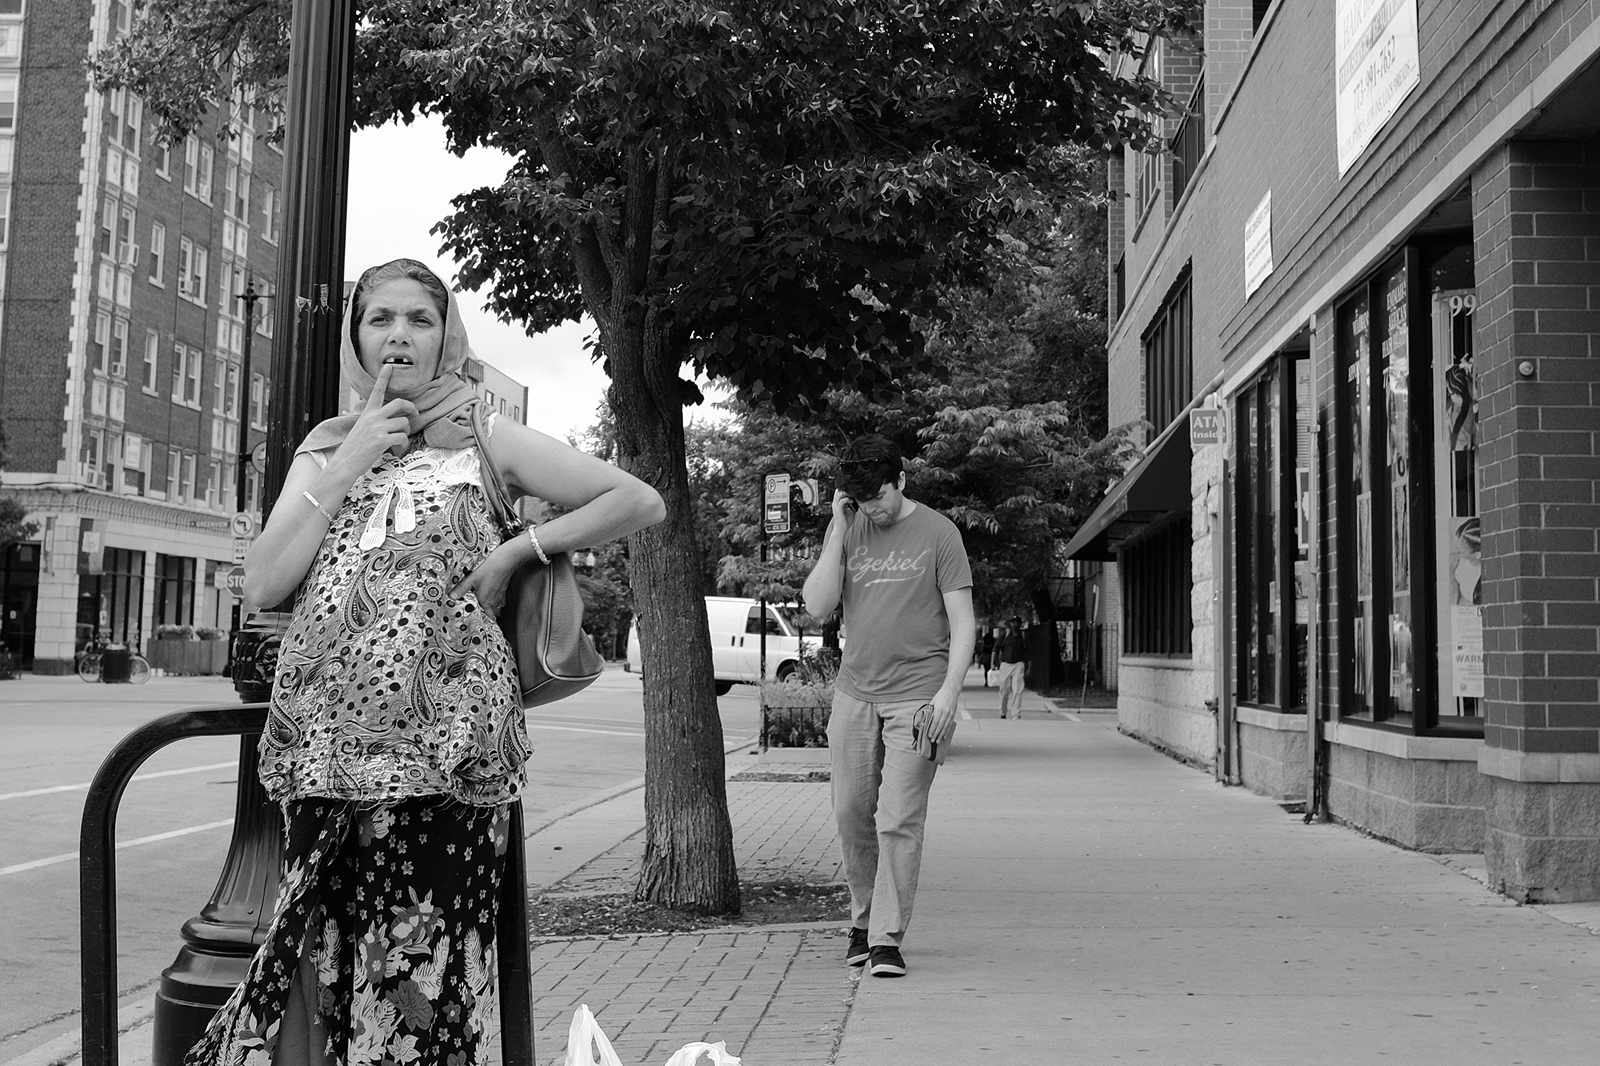 A street photograph of a woman pointing towards her missing tooth